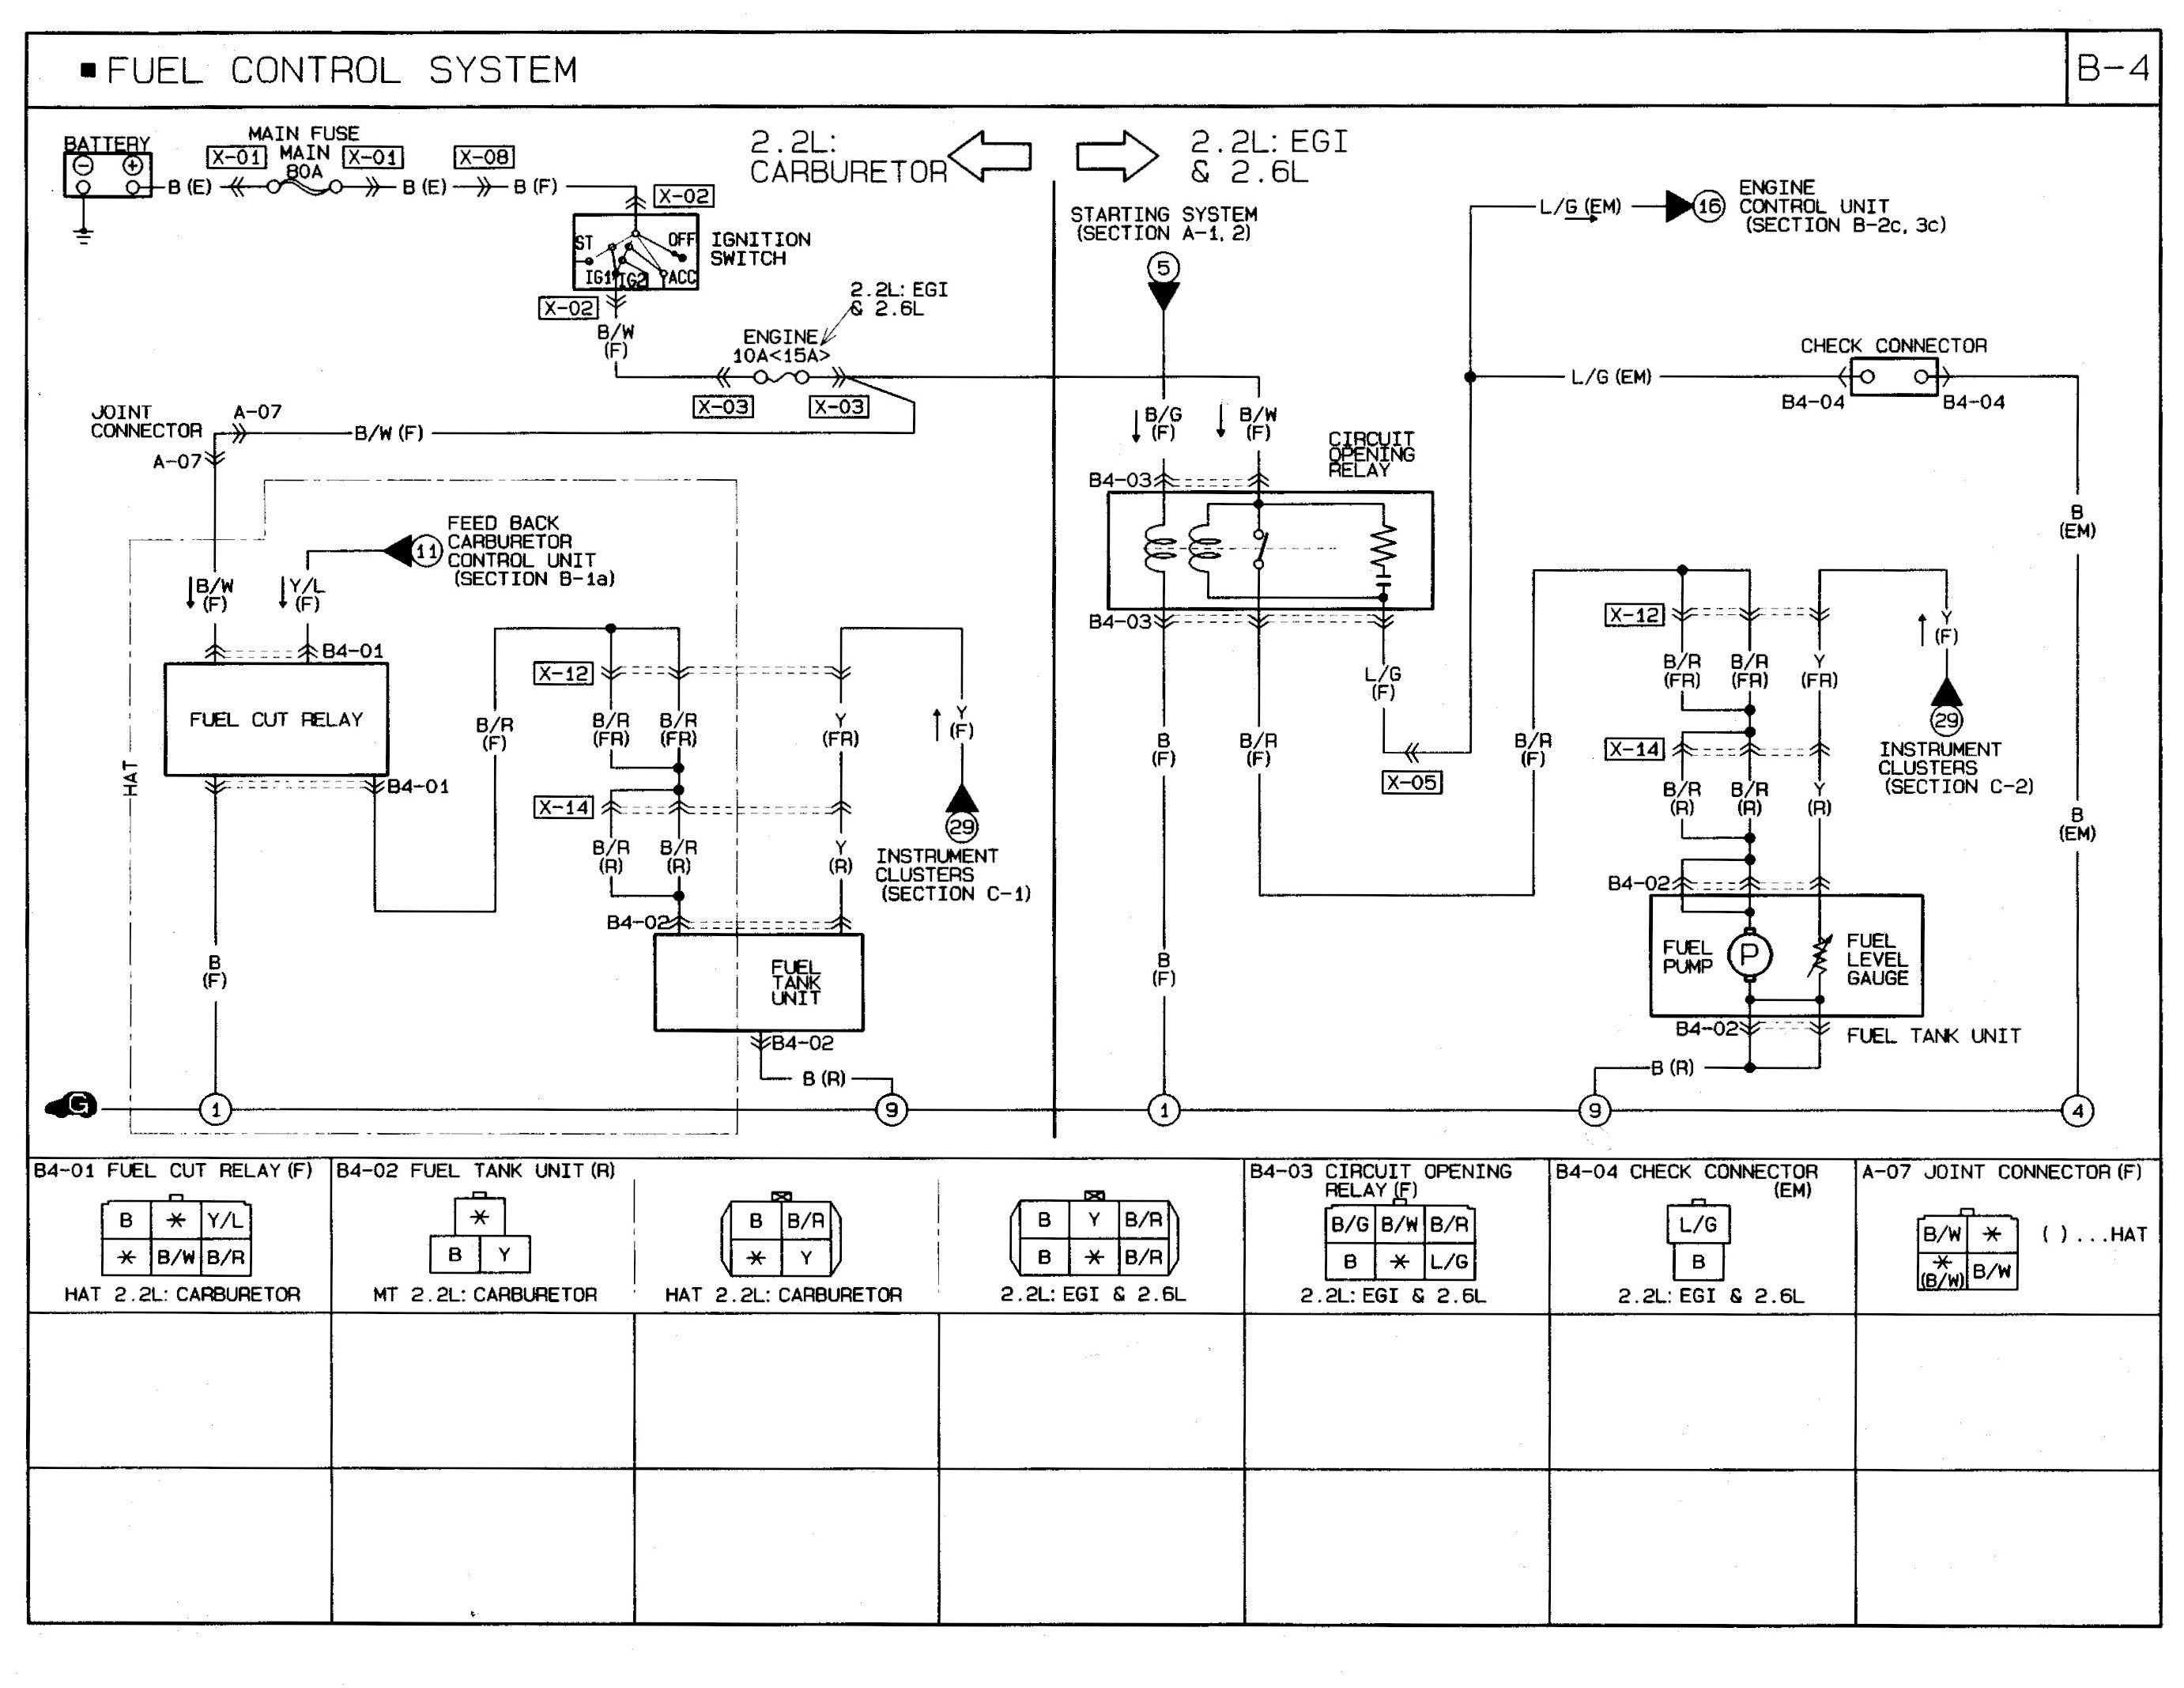 medium resolution of 2003 mazda protege 5 engine compartment wiring schematic saferbrowser yahoo image search results